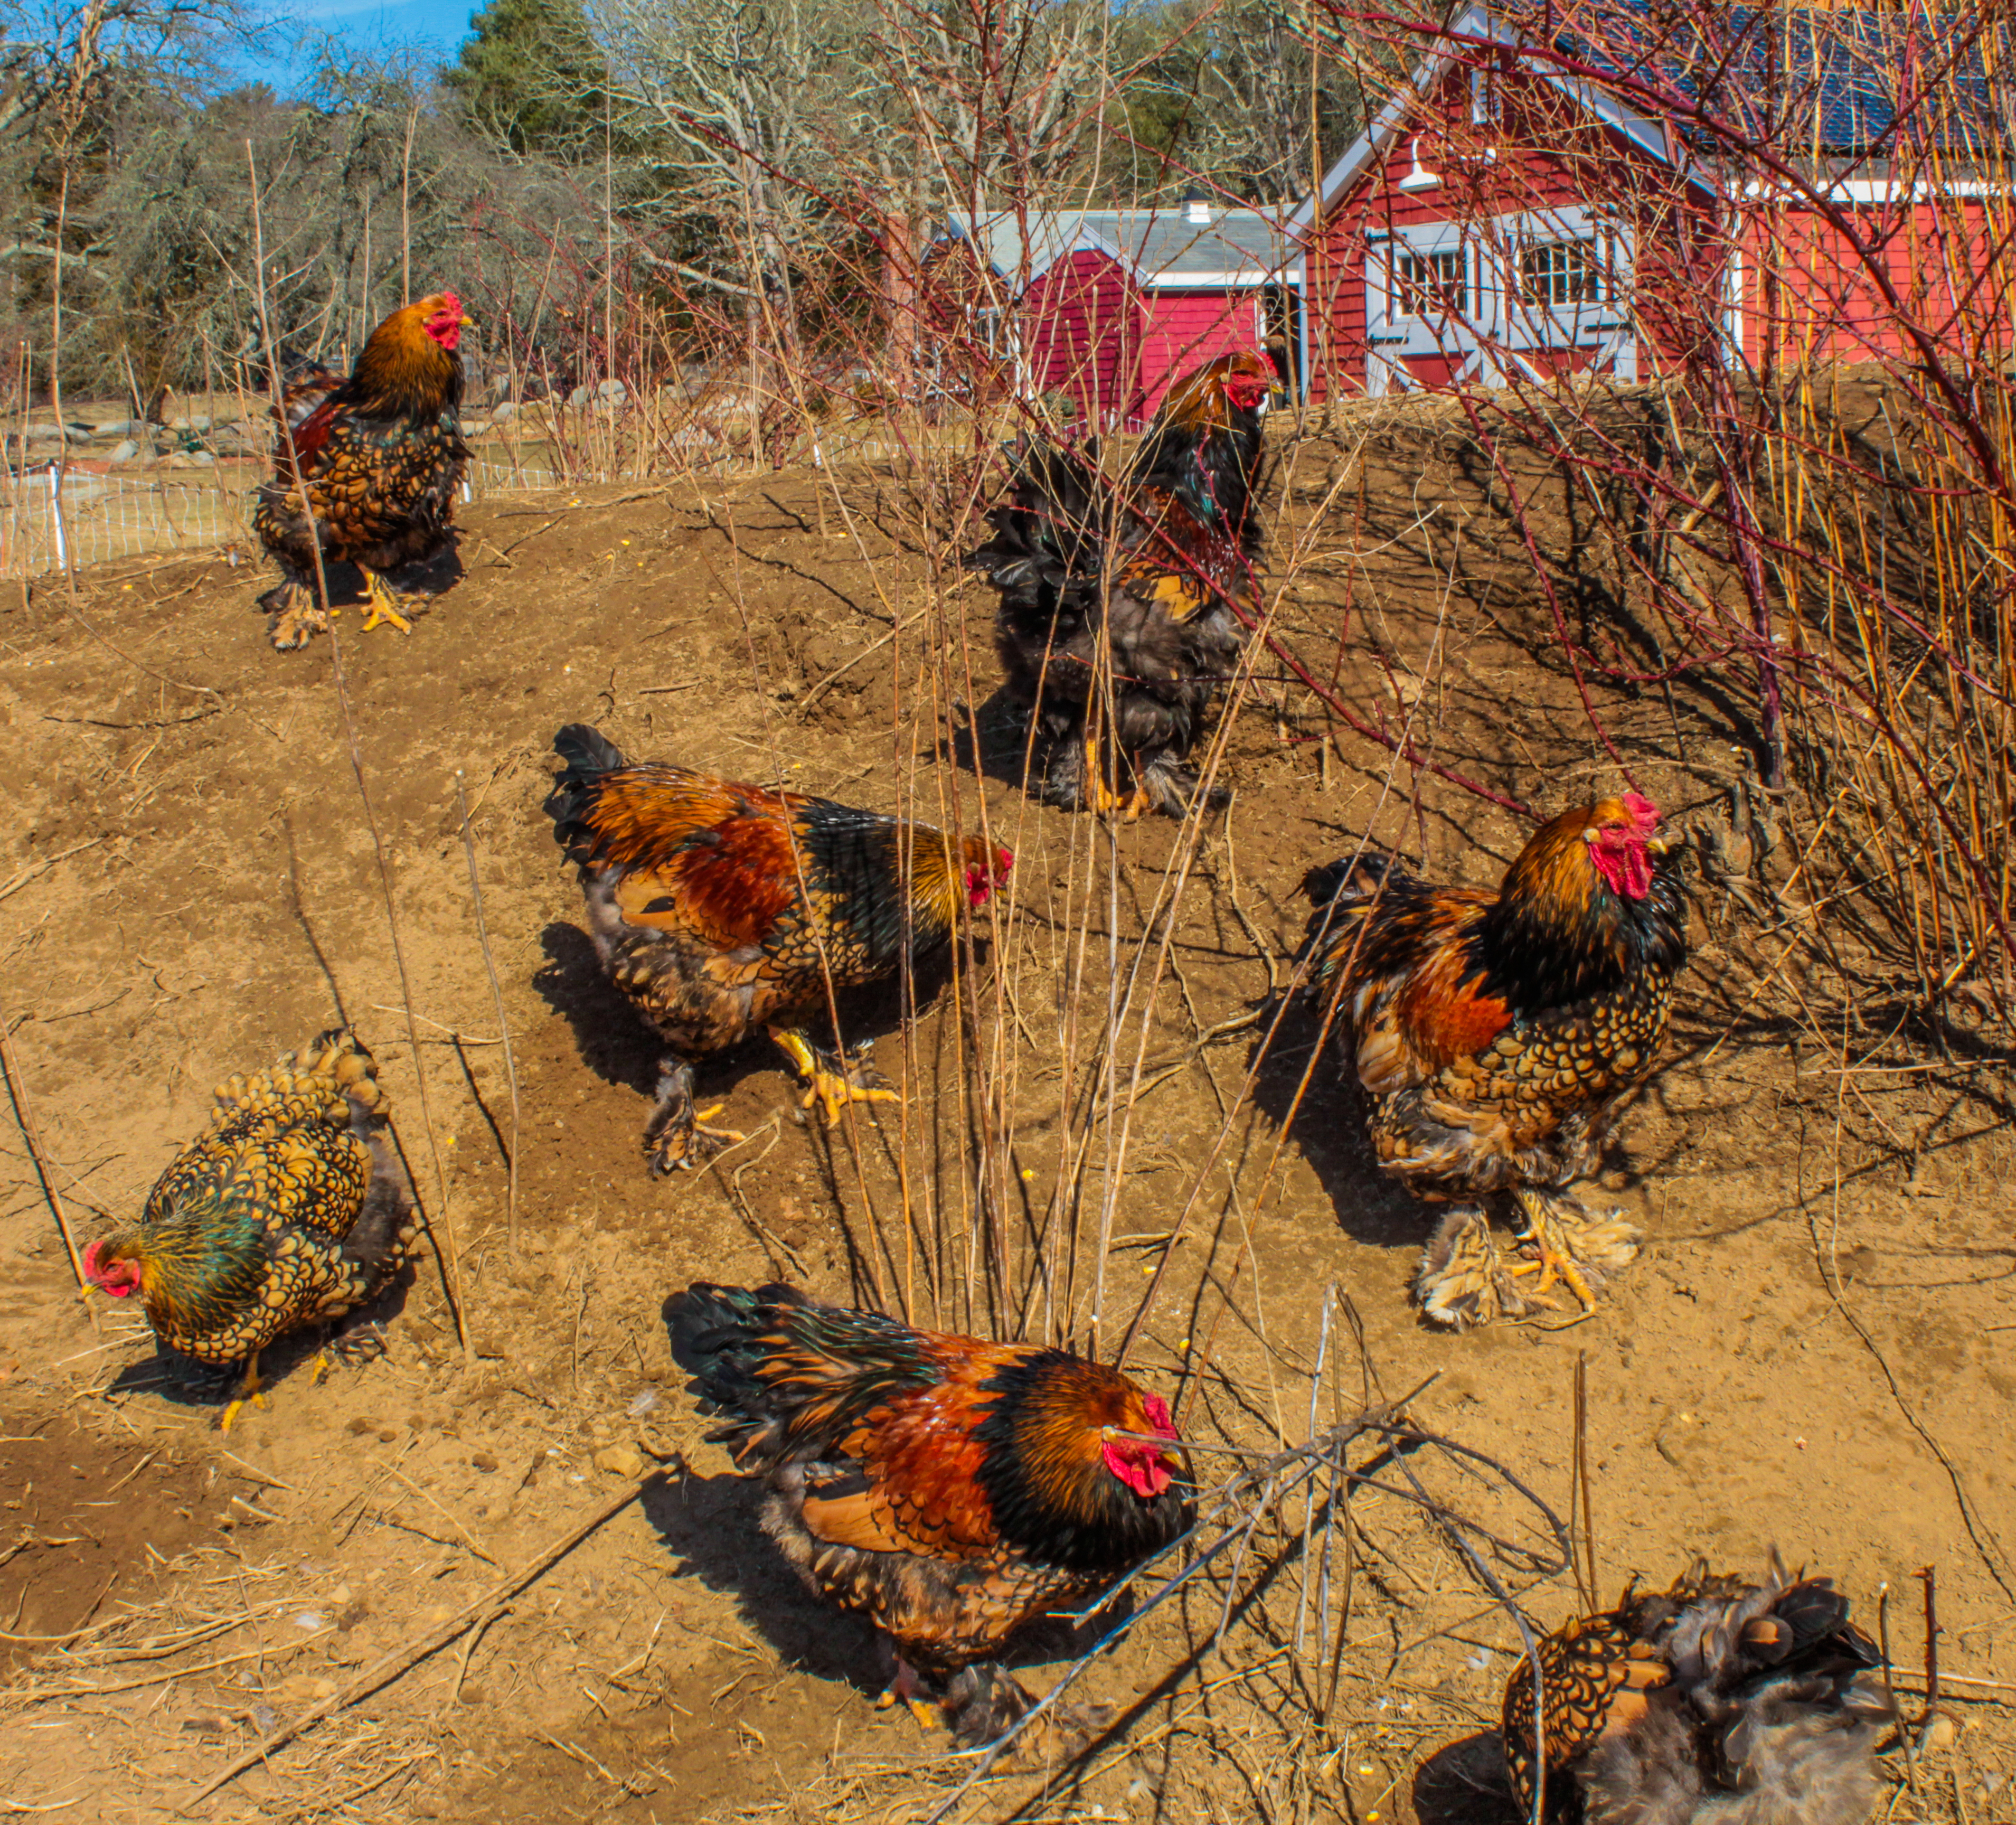 Gold-laced Brahma Chickens at Lavender Waves Farm